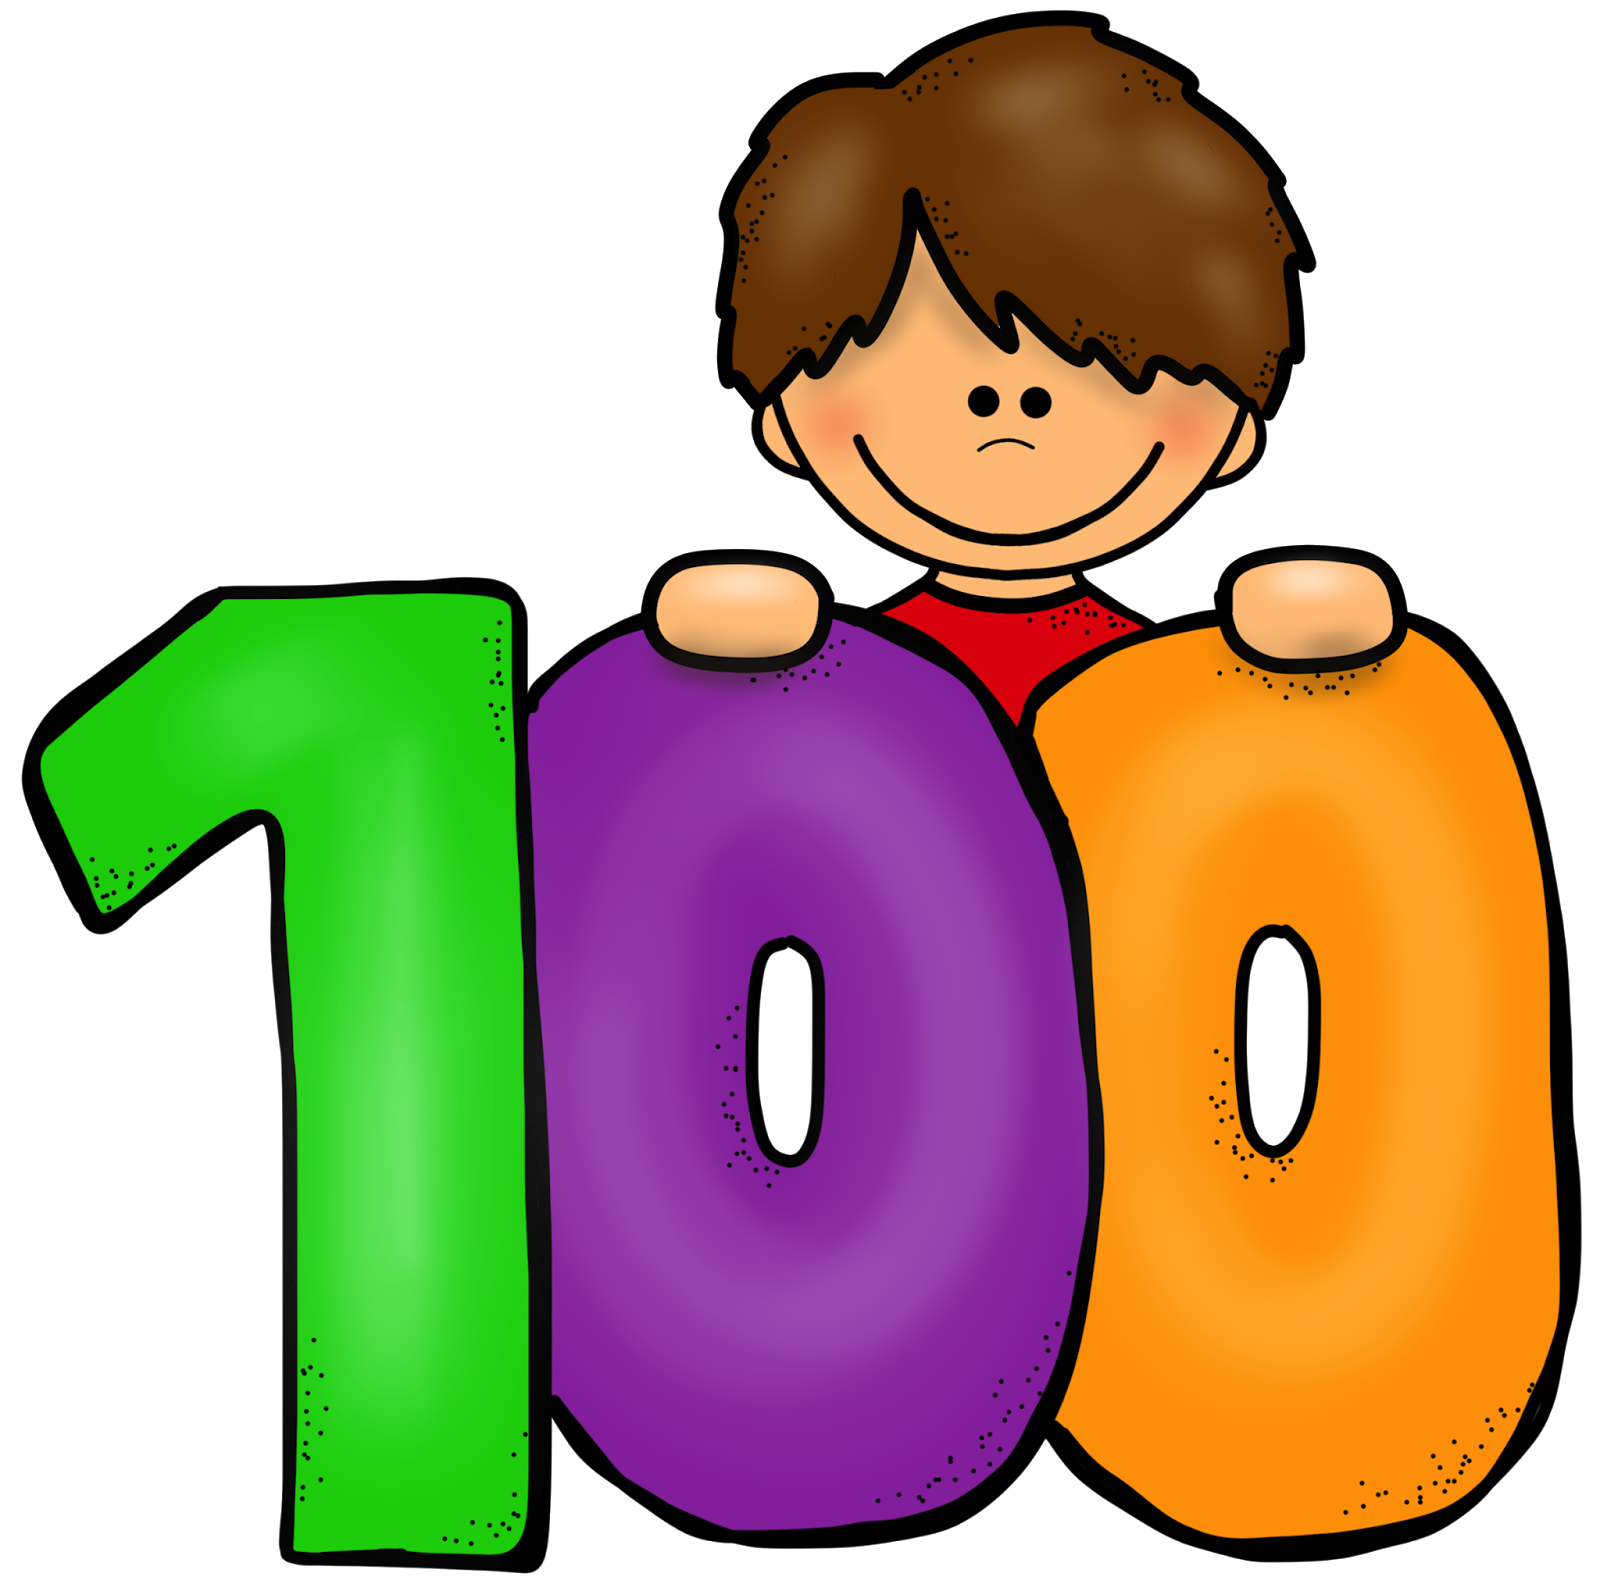 100 day clipart at getdrawings com free for personal use 100 day rh getdrawings com 100% Score Clip Art 100 clipart